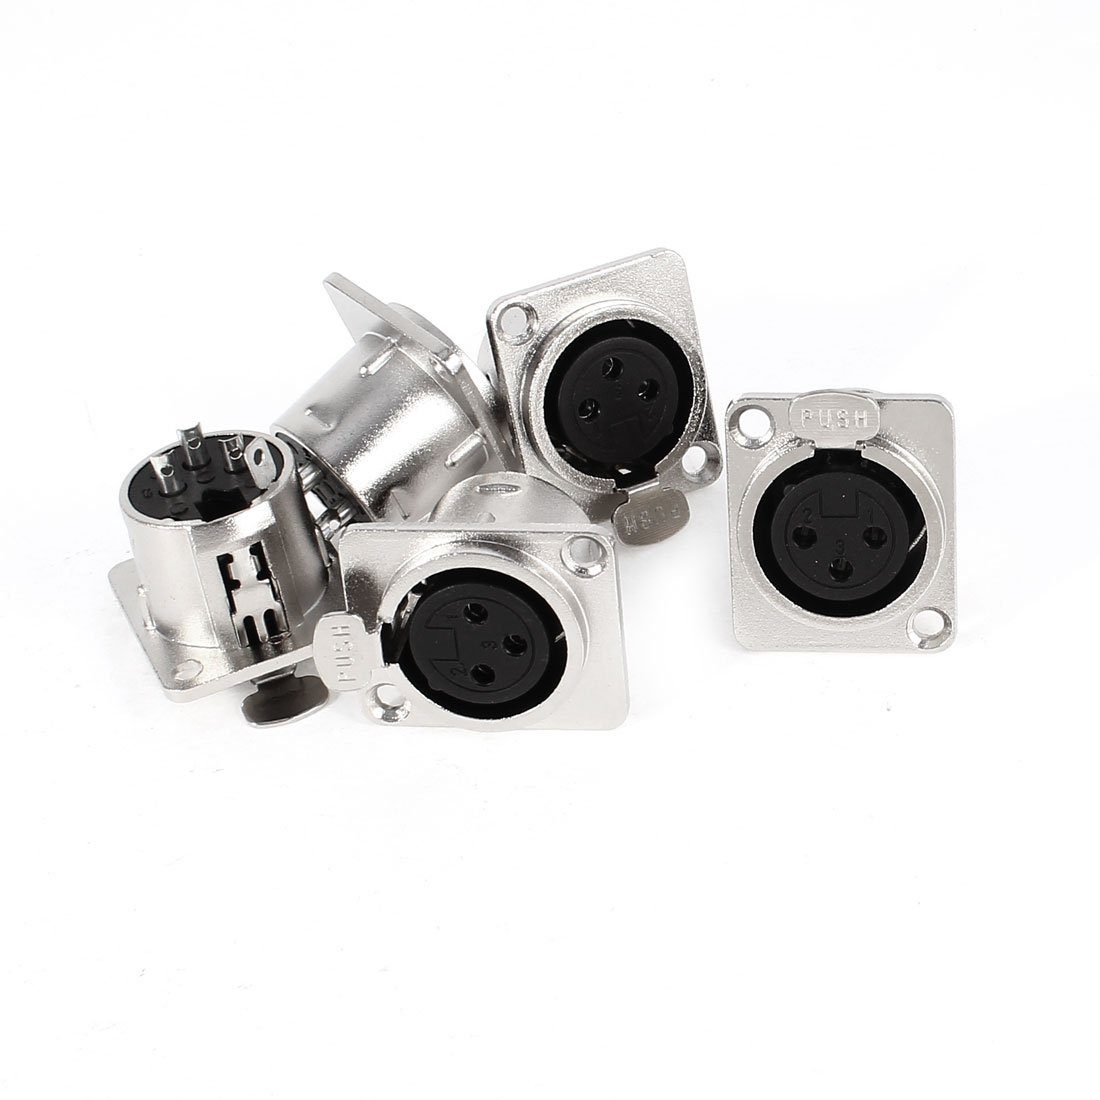 uxcell Metal Audio XLR 3 Pin Female Chassis Panel Mount Socket Connector 5 Pcs Silver Tone